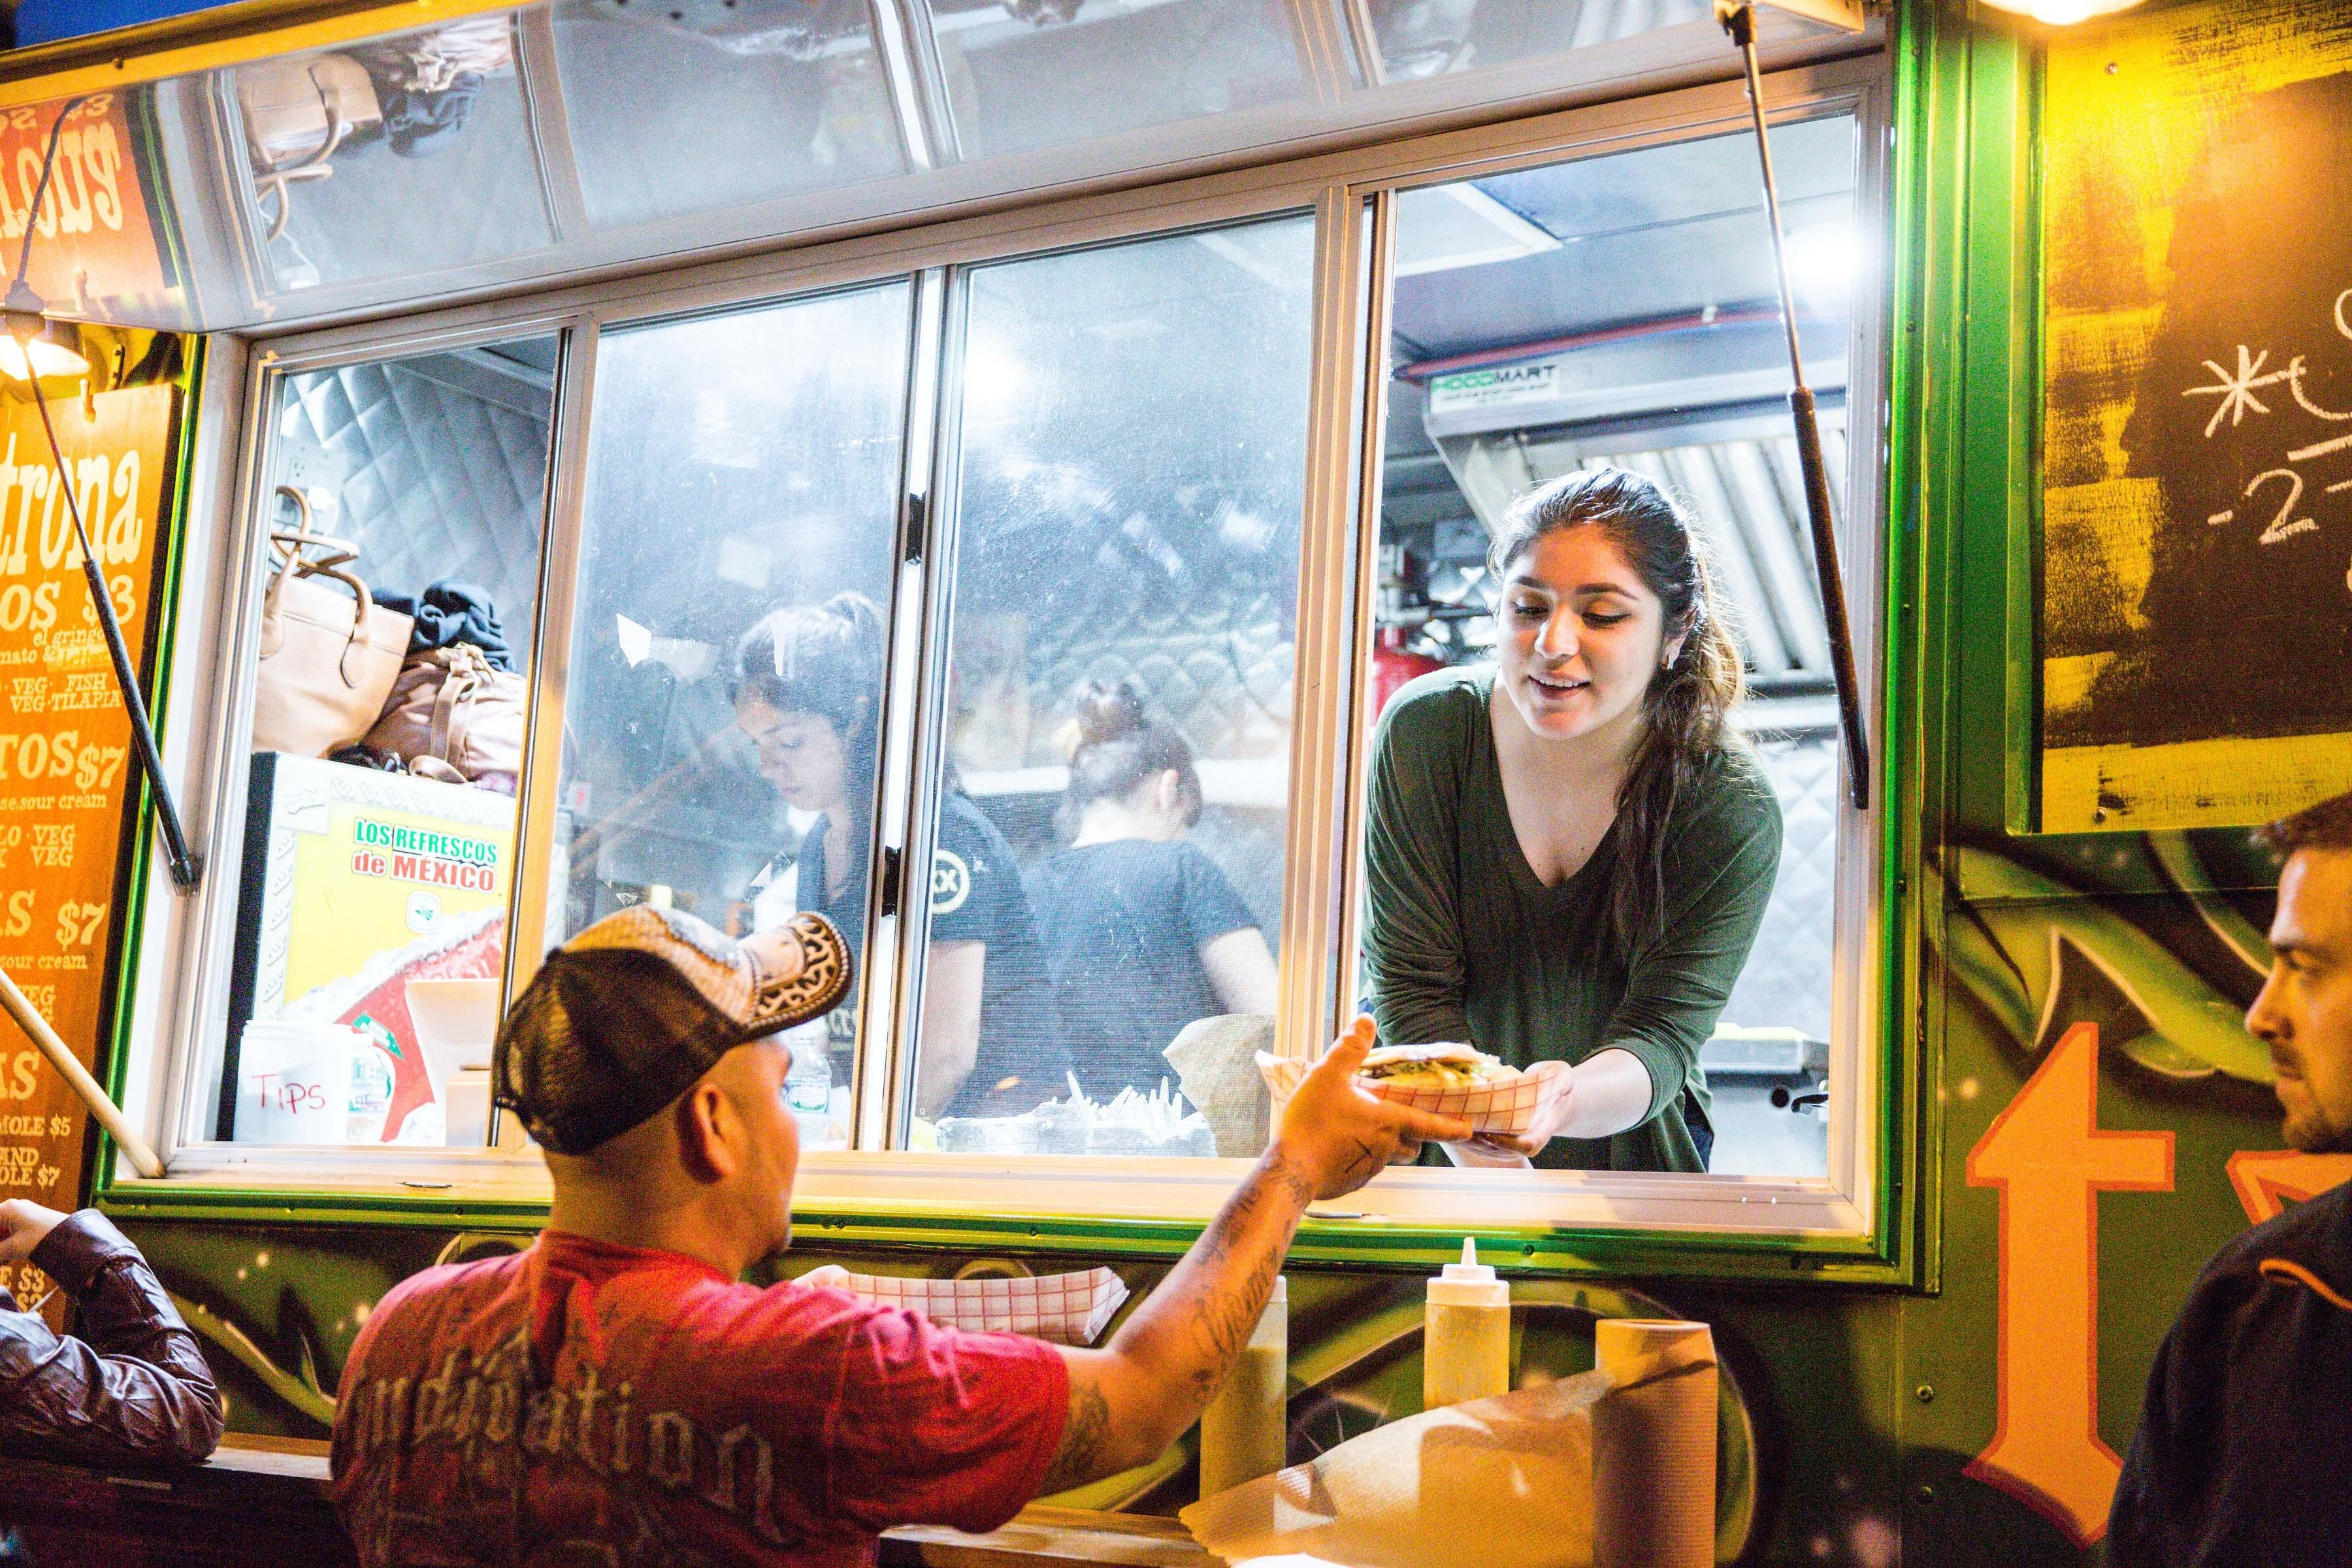 Stock up on snacks at the West Town Food Truck Social.